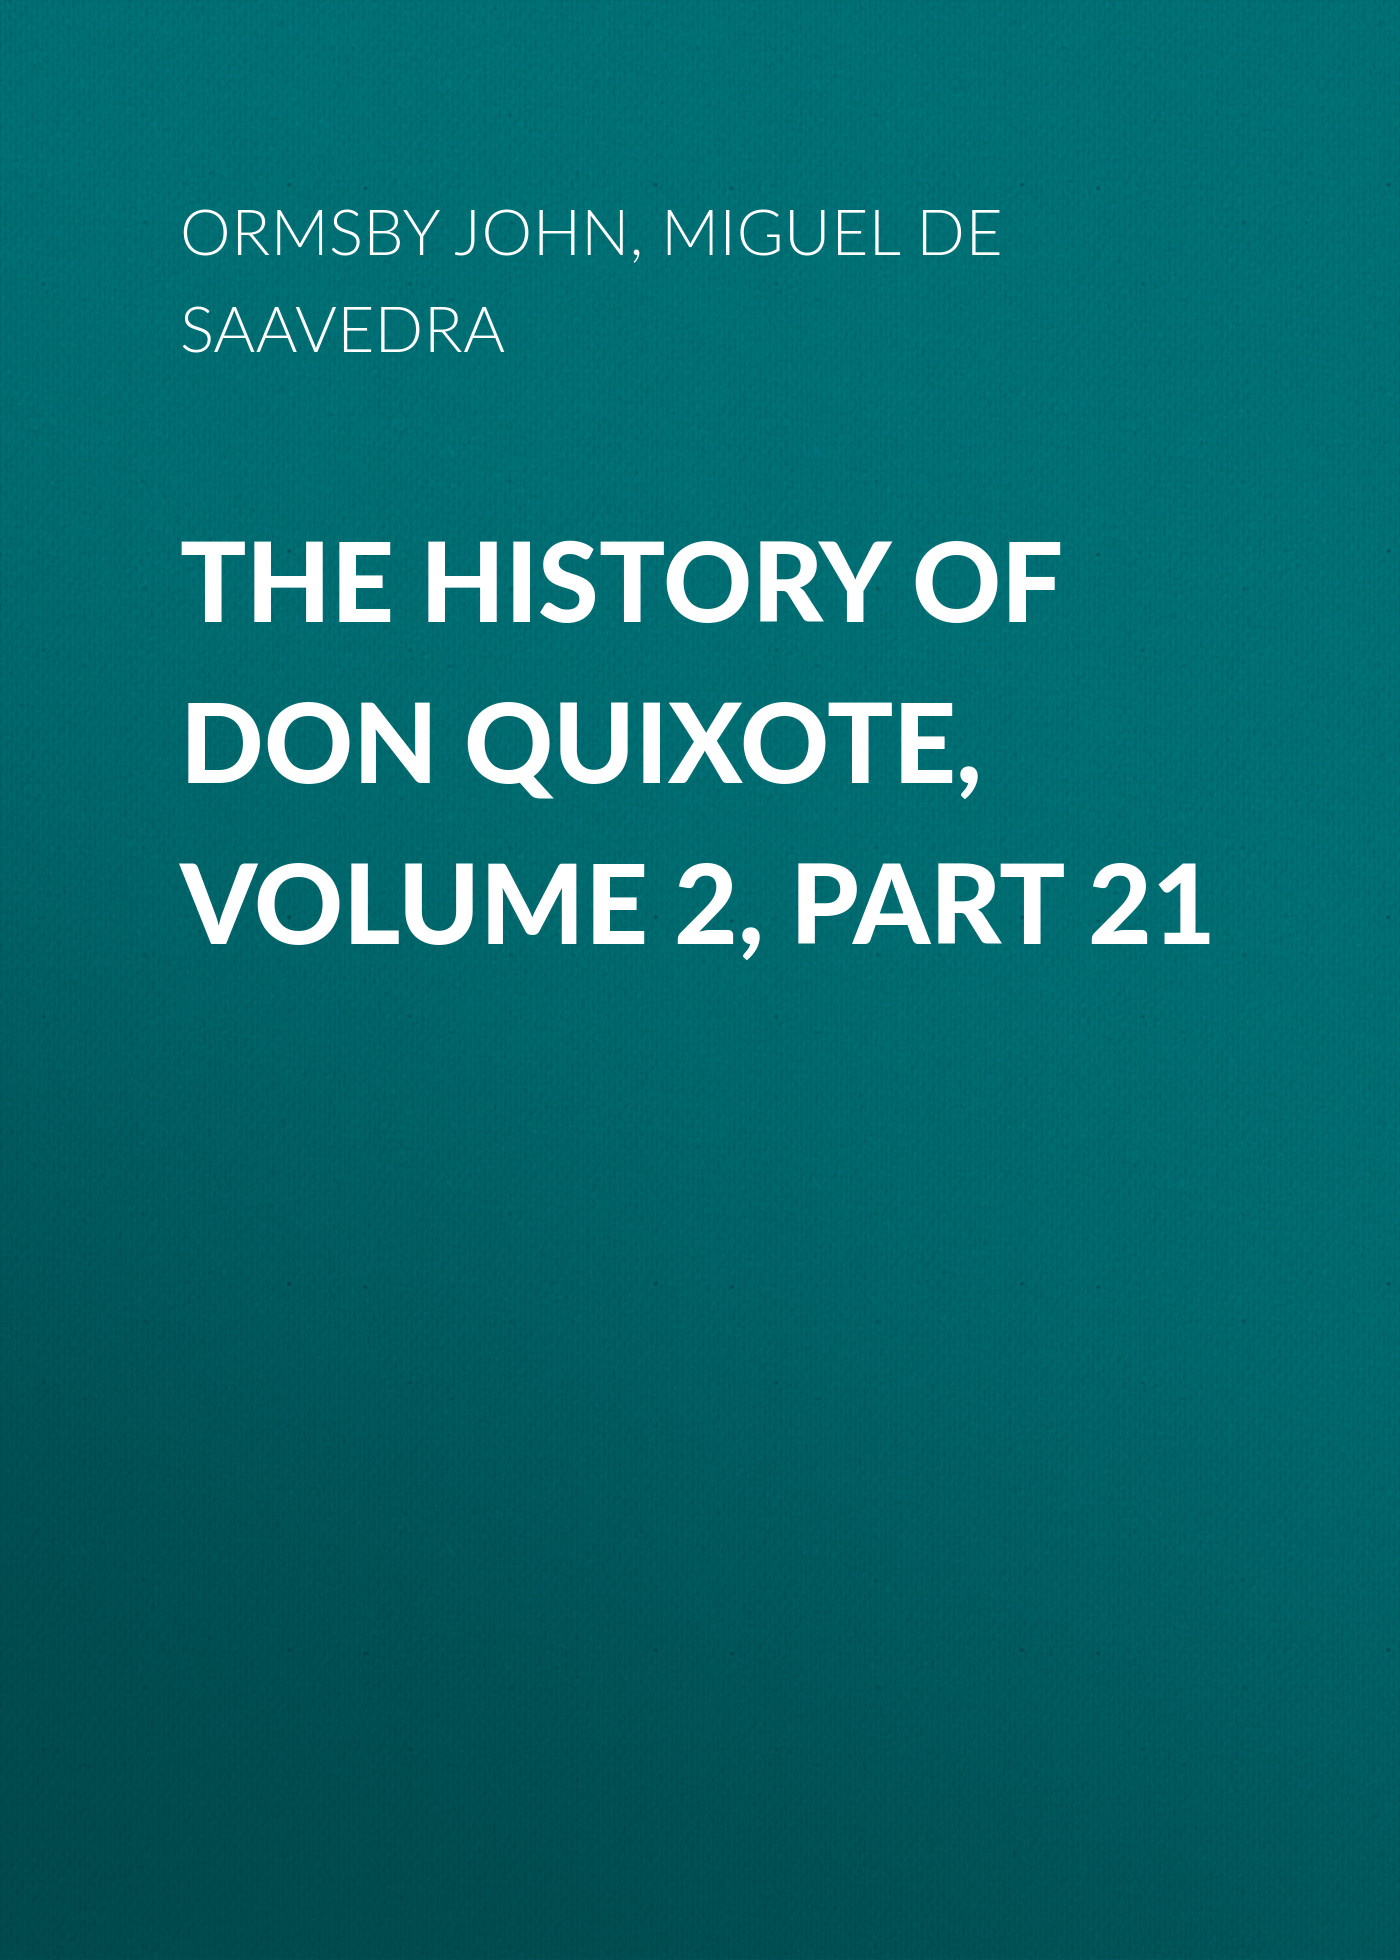 Мигель де Сервантес Сааведра The History of Don Quixote, Volume 2, Part 21 rasmus björn anderson the heimskringla a history of the norse kings volume 5 part 2